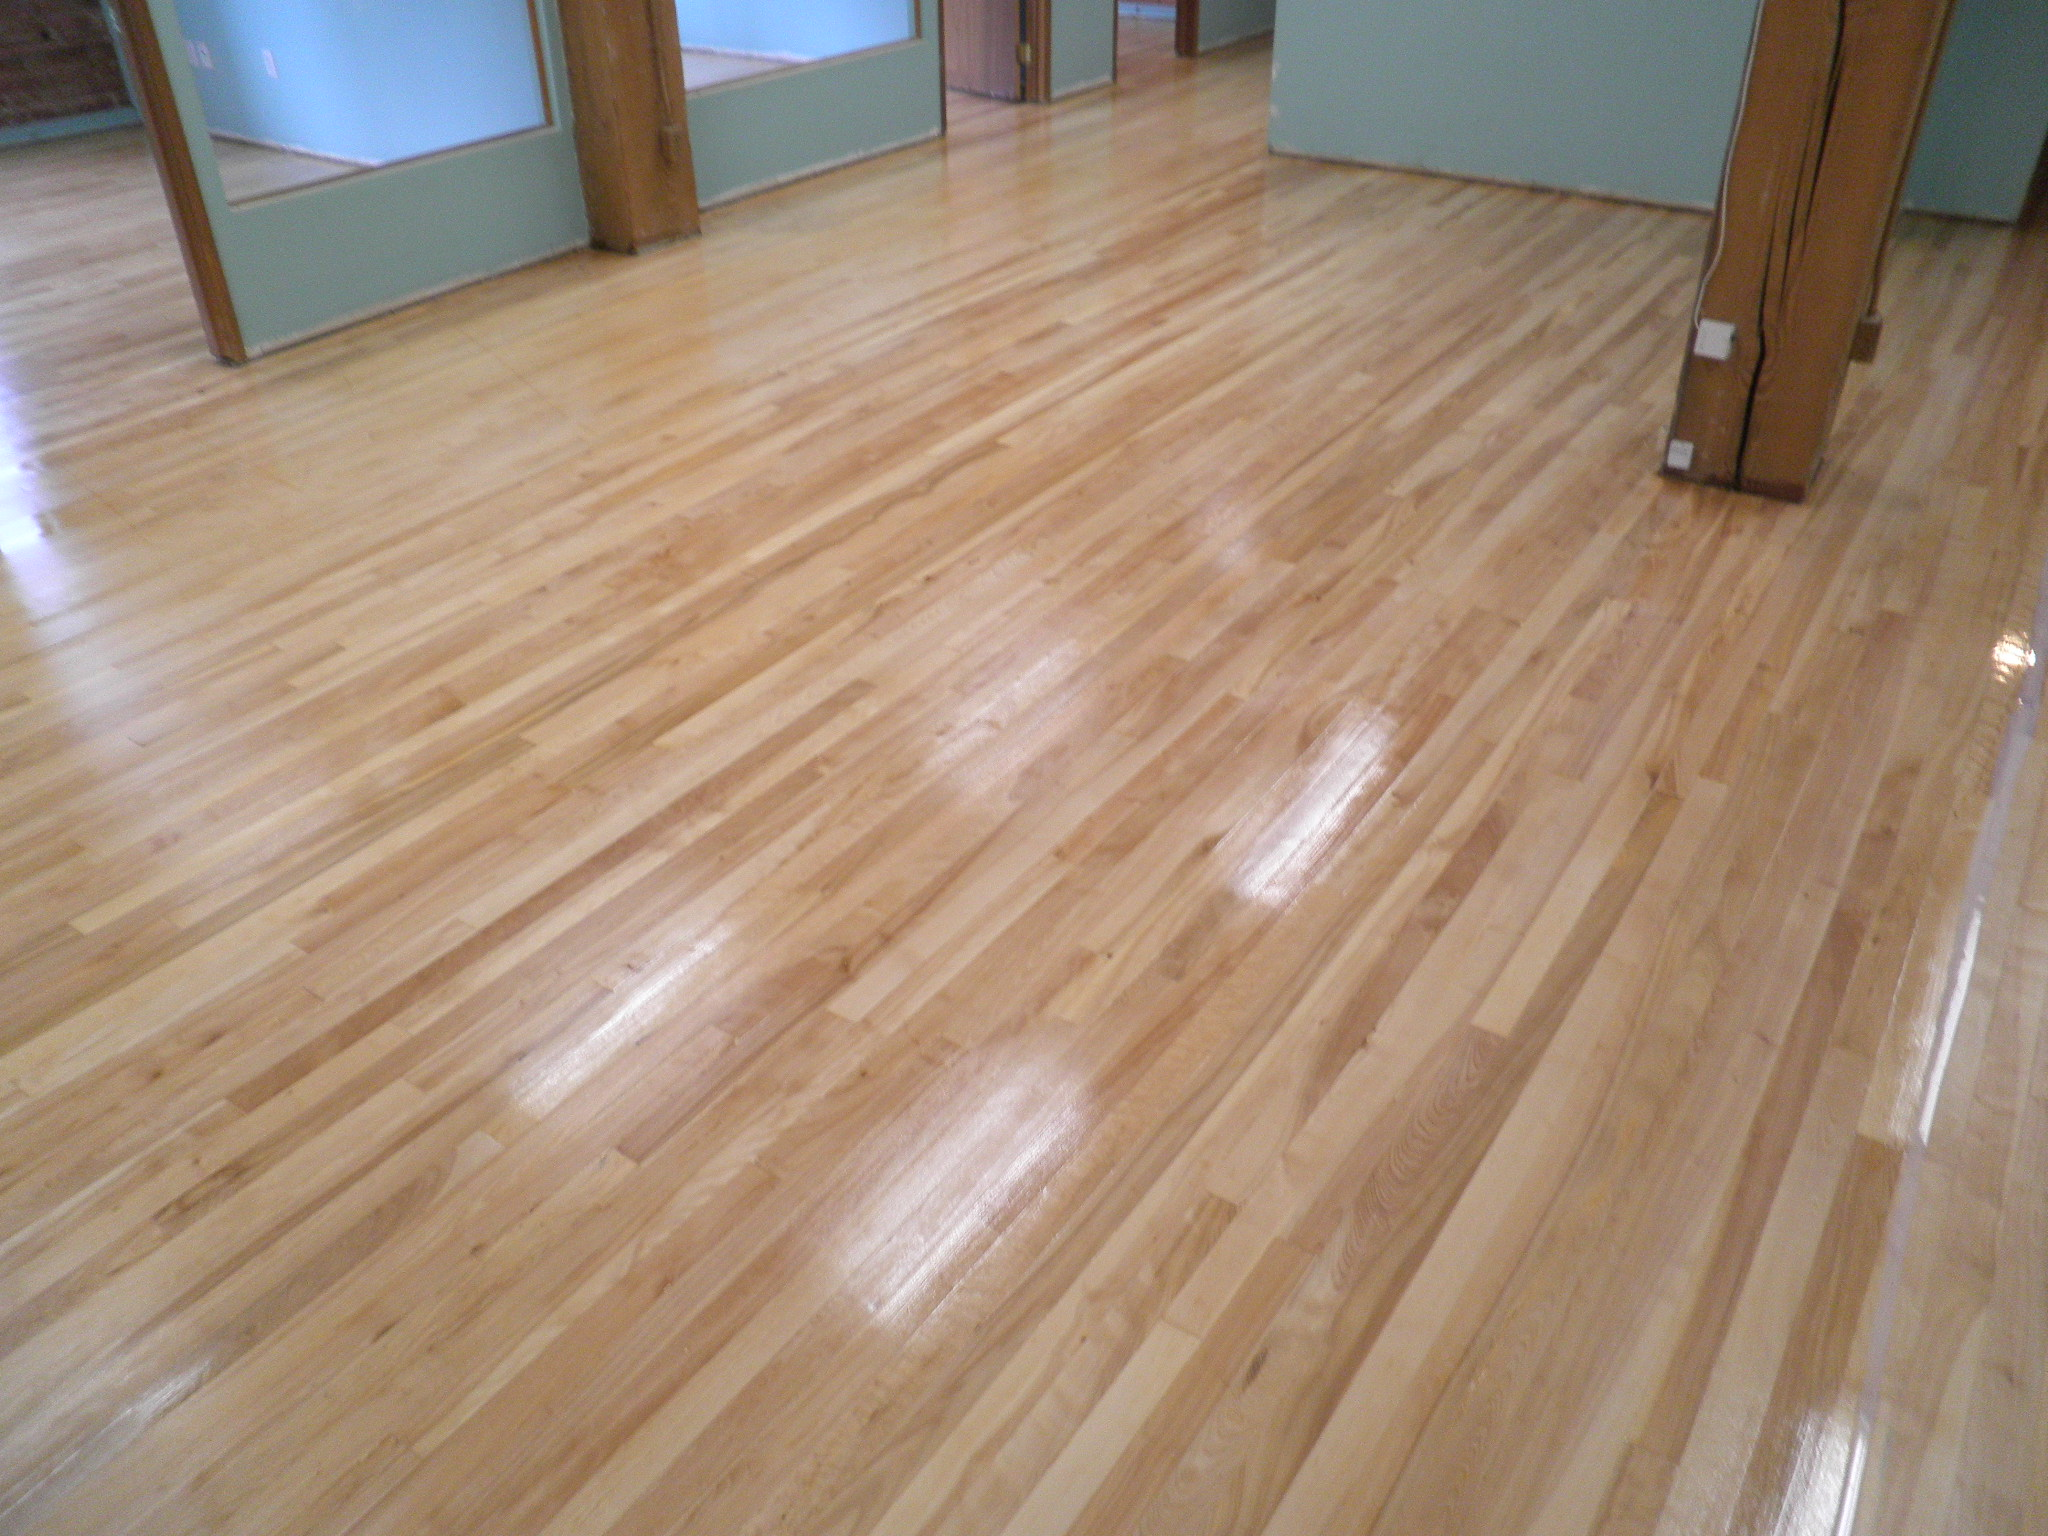 Clear floor coating for wood carpet vidalondon for Resurfacing wood floors